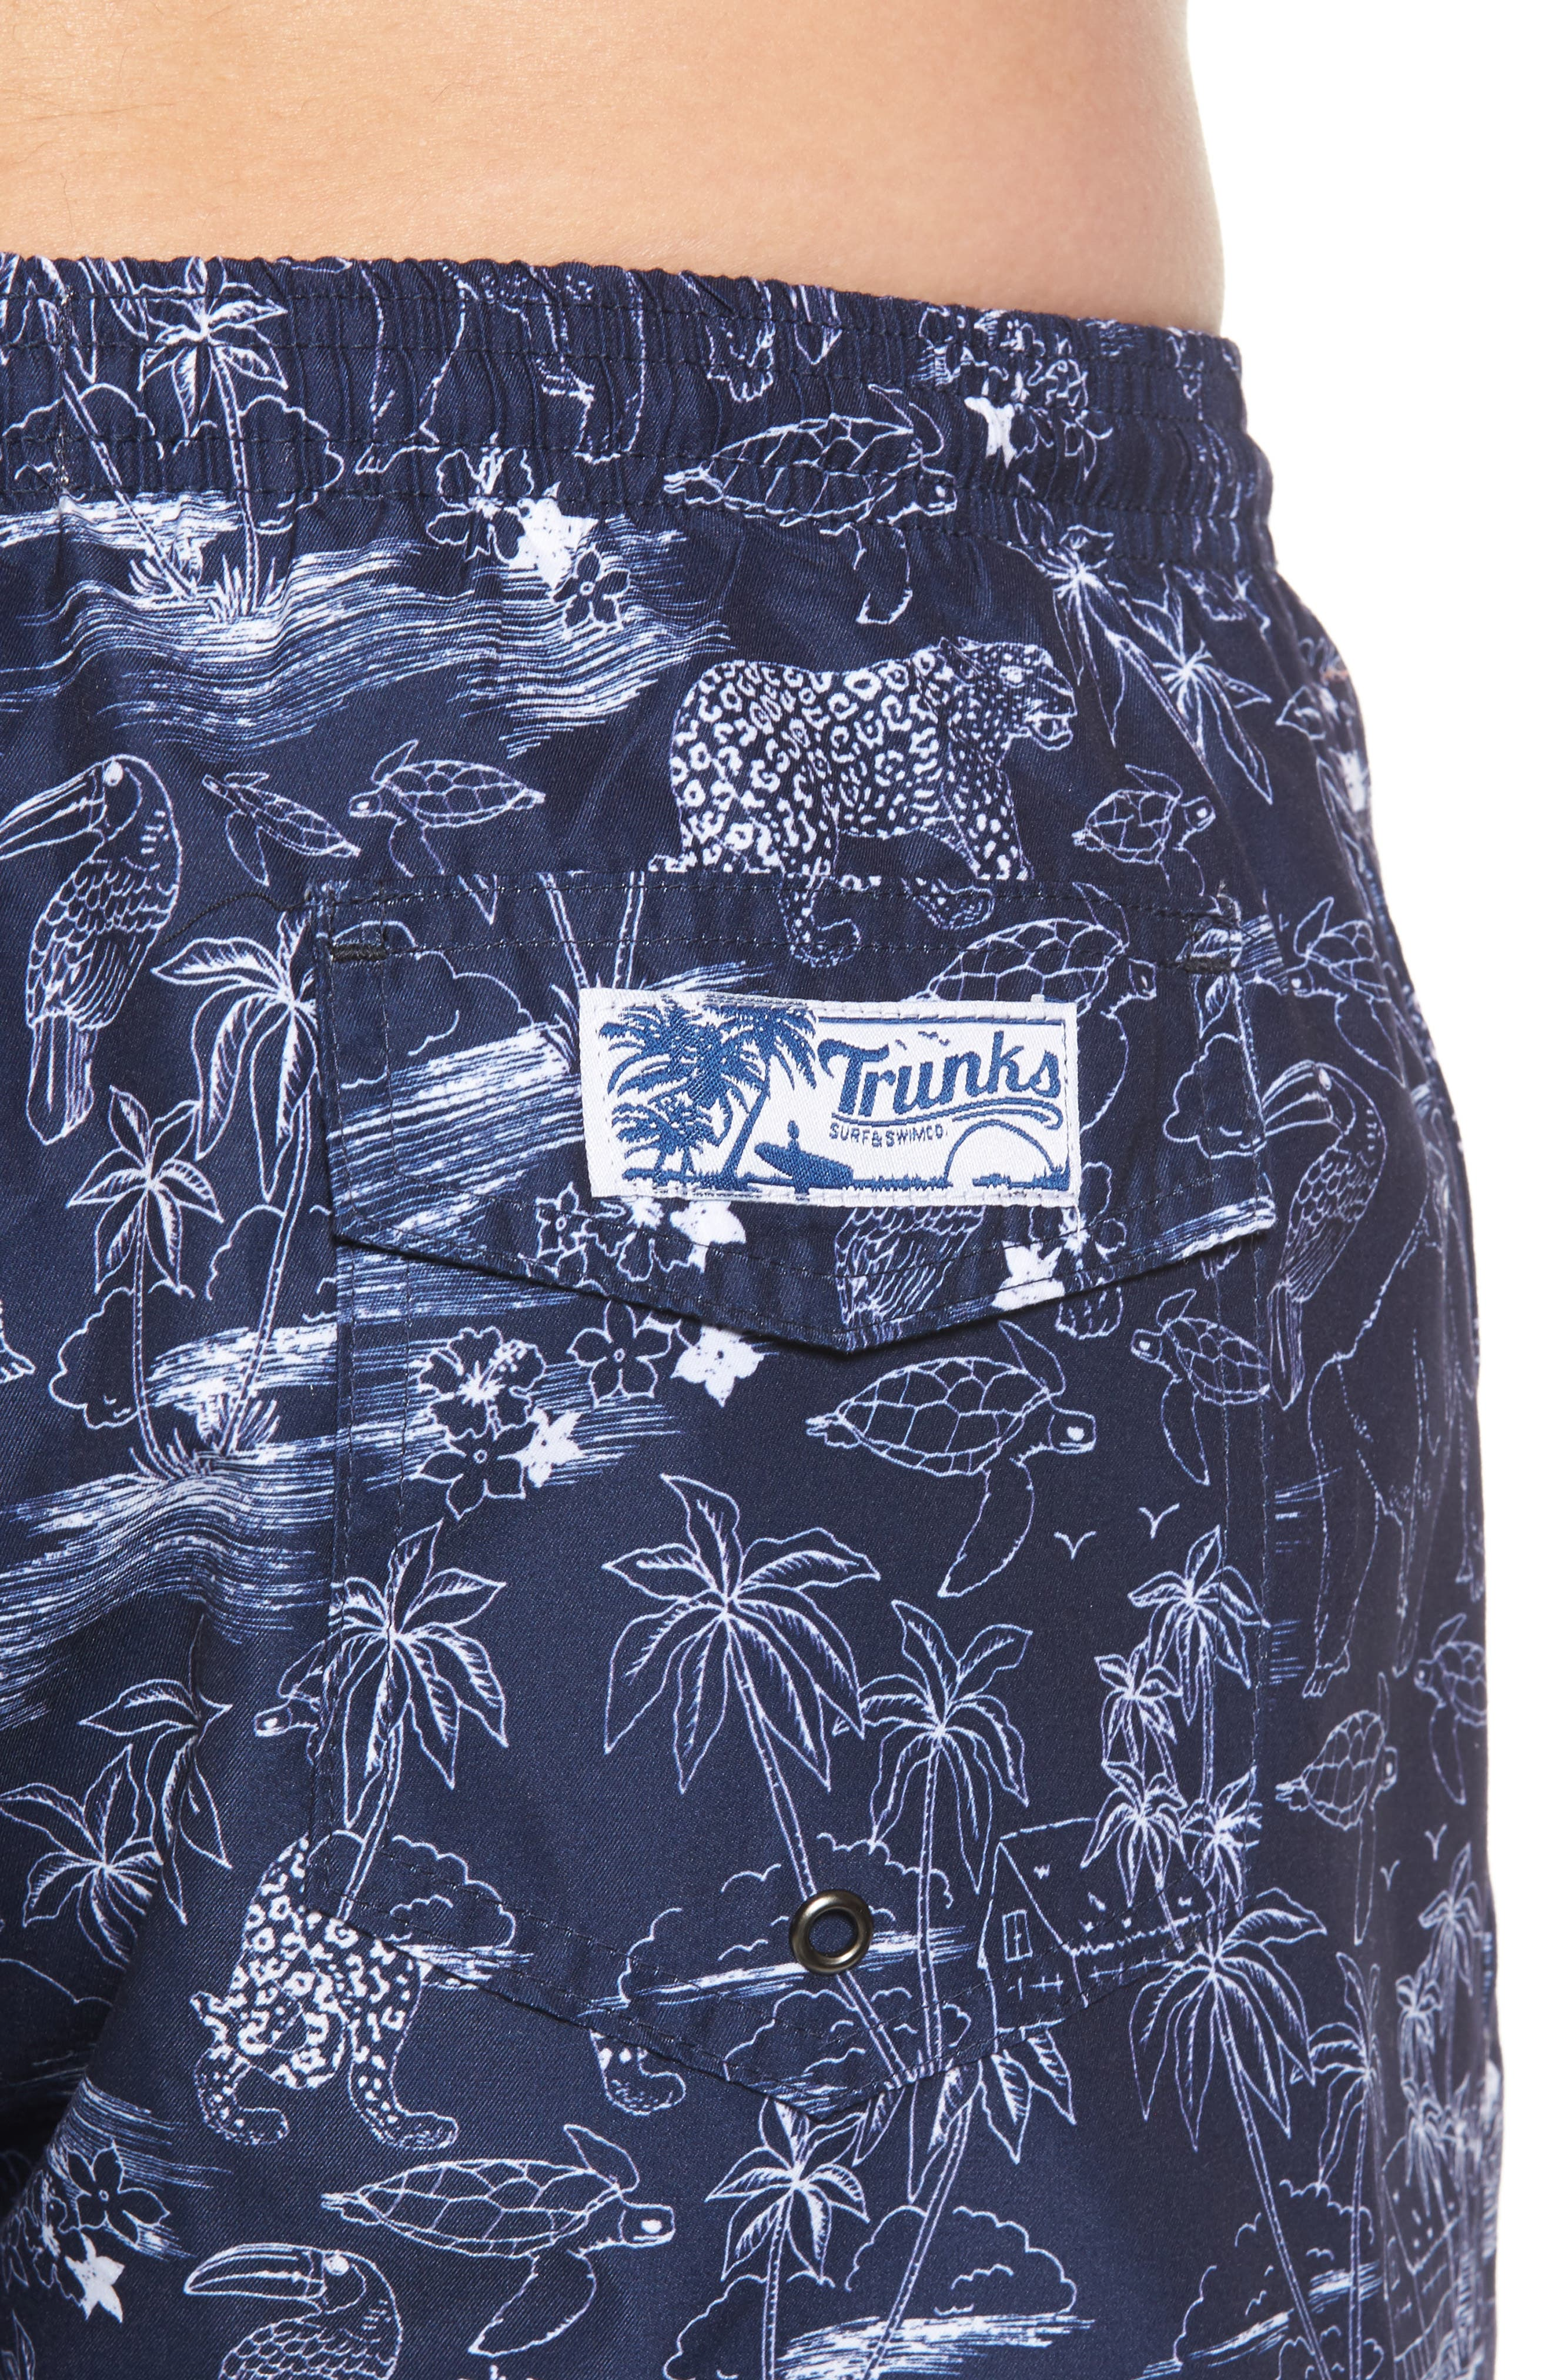 Trunks Surf & Co. San O Jungle Safari Swim Trunks,                             Alternate thumbnail 4, color,                             100